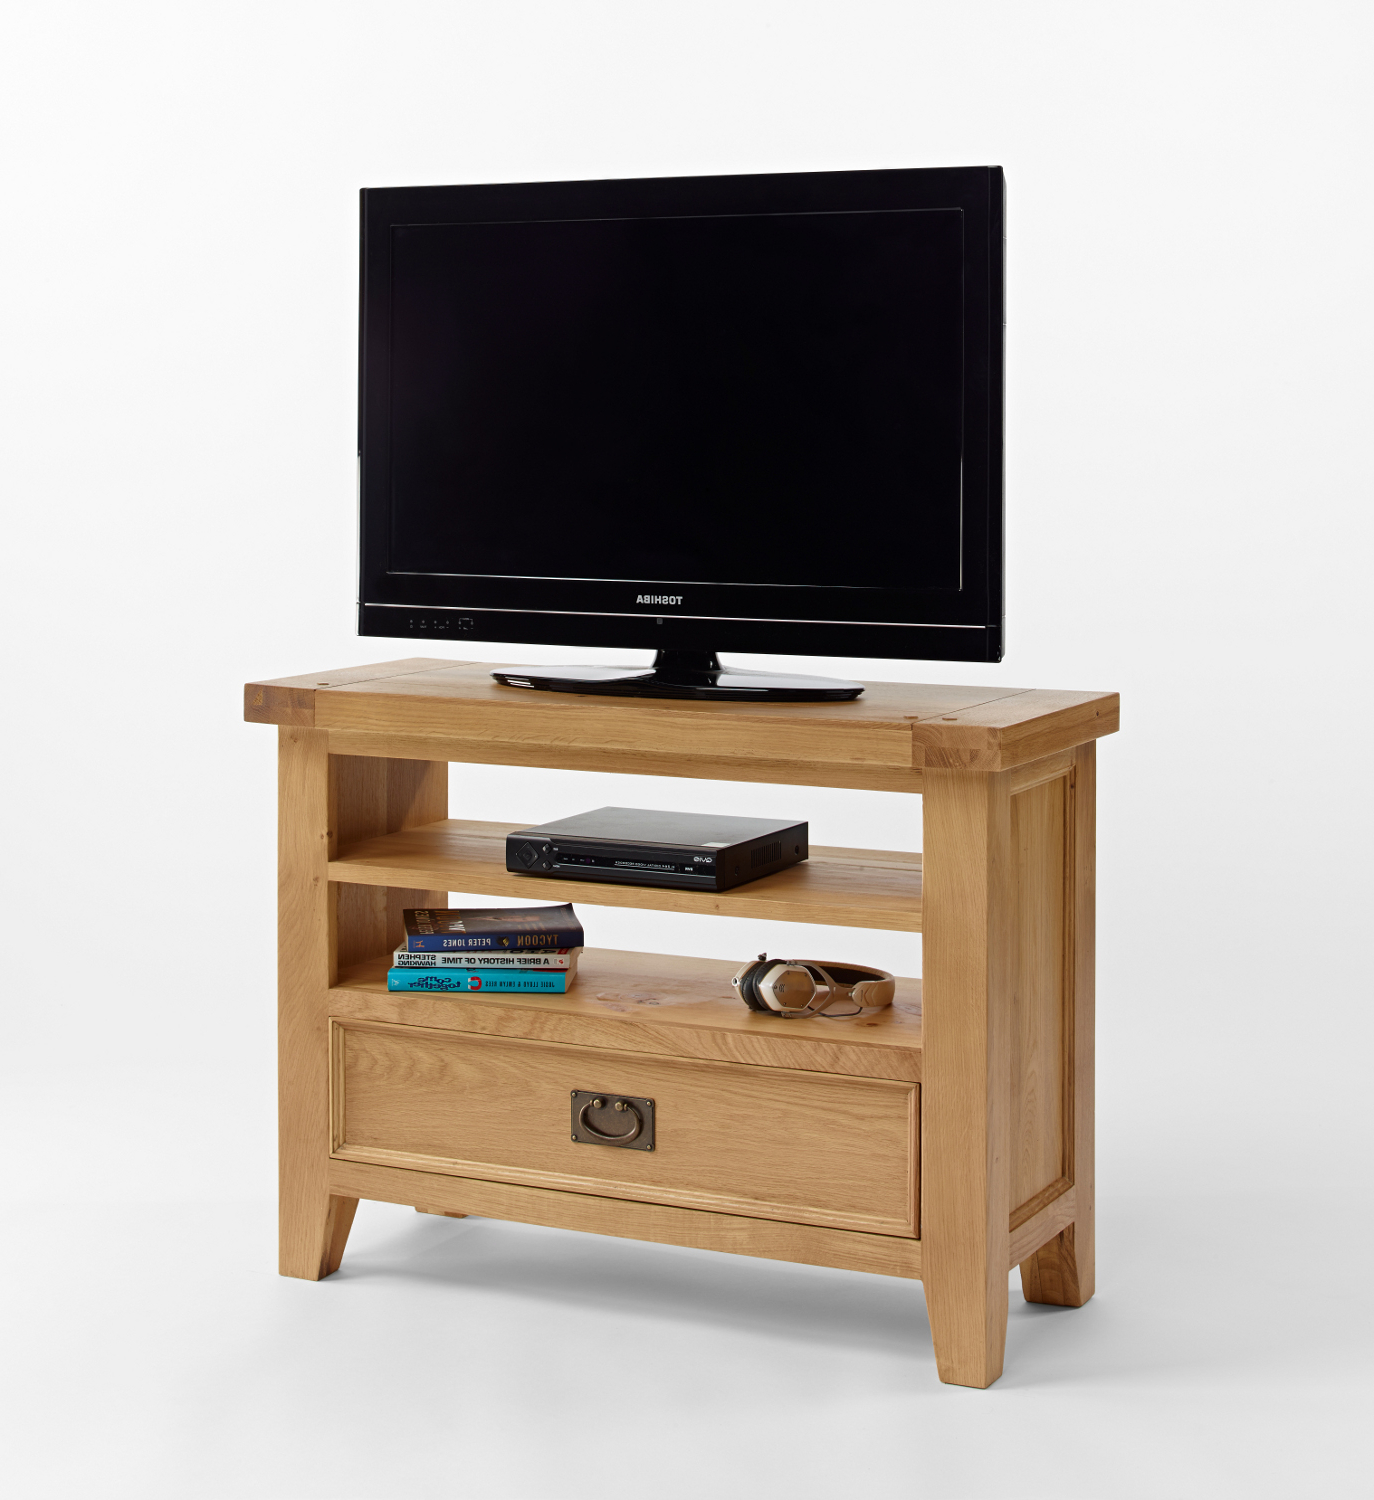 Small Oak Tv Cabinets Inside Latest Oak Tv Units Solid Cabinets Corner Furniture Stands Trends Including (View 9 of 20)